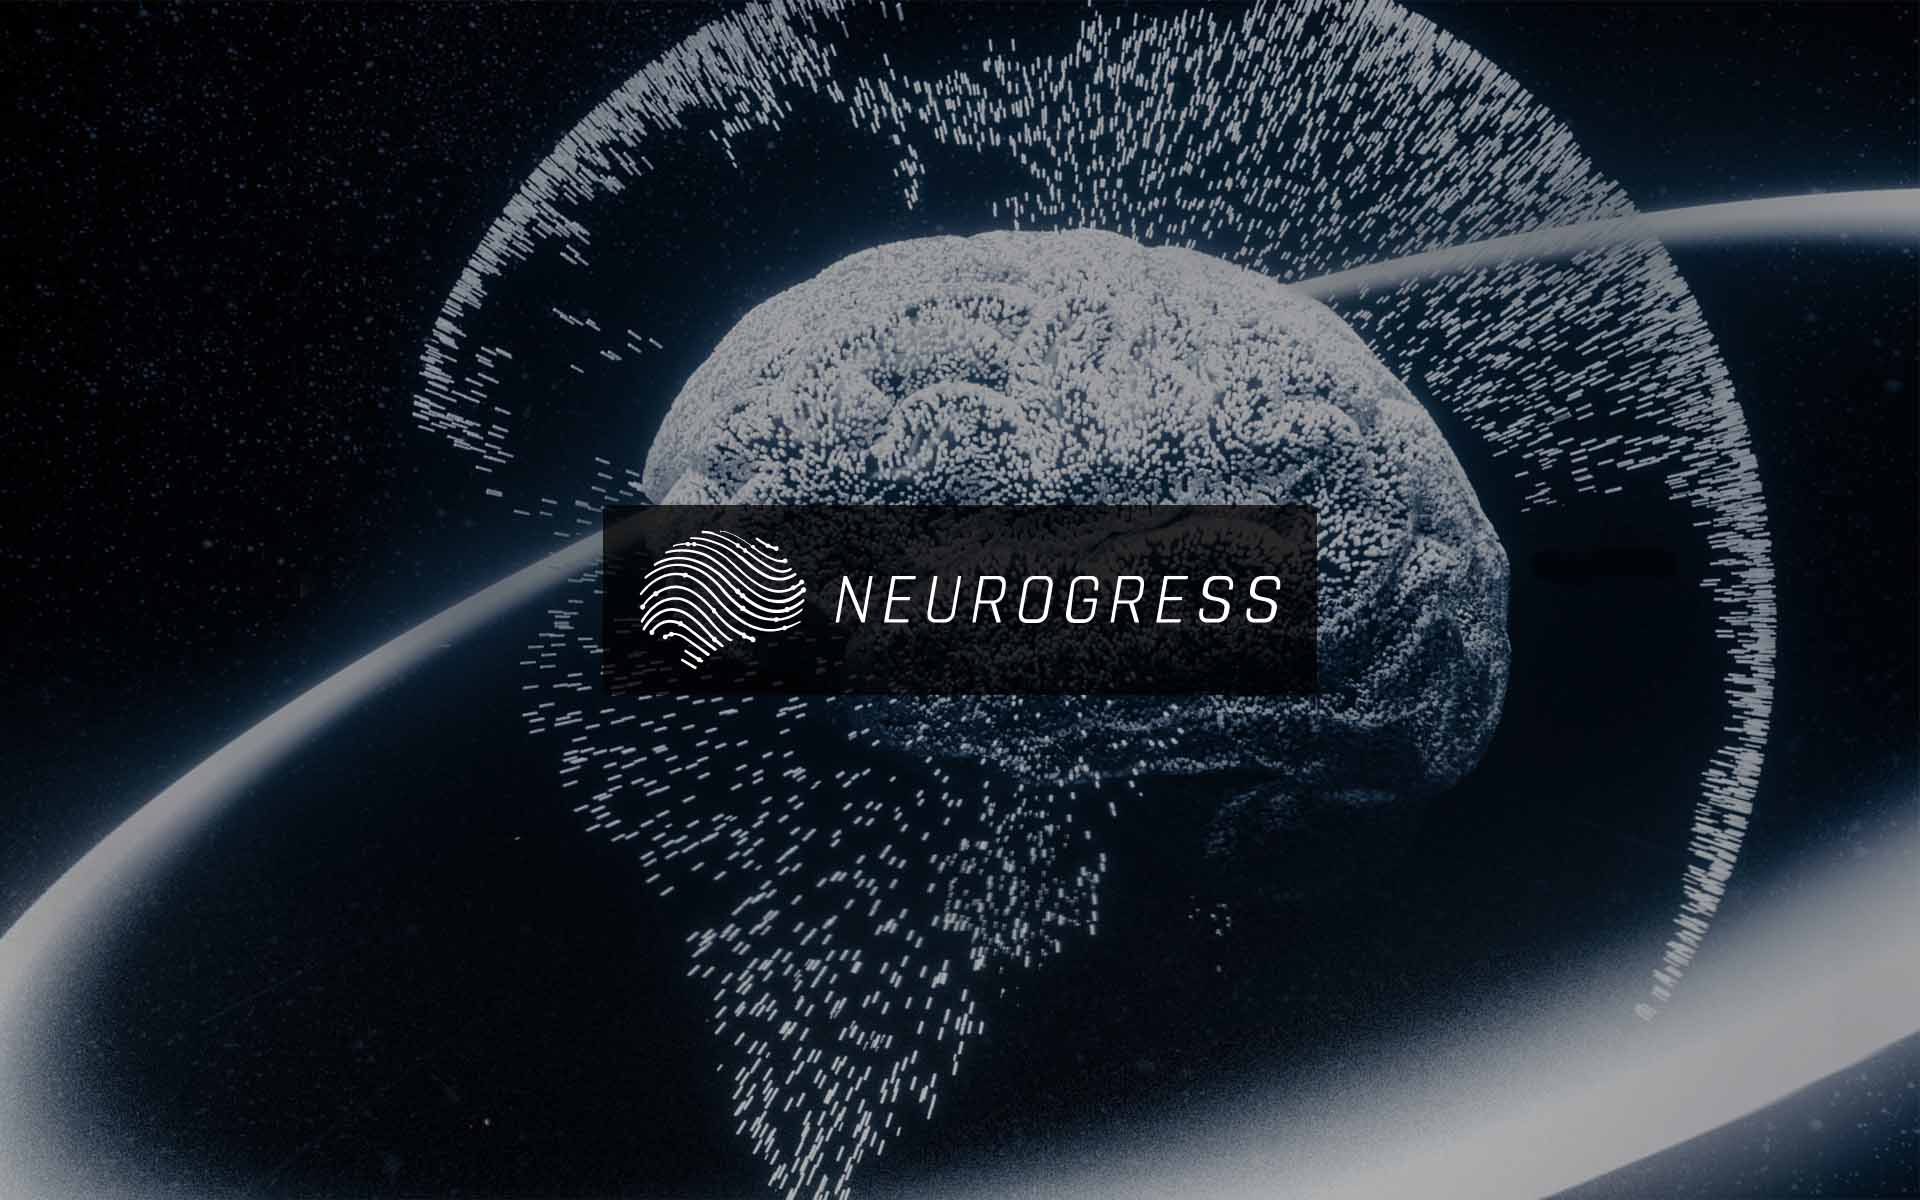 Neurogress Announces Exciting Potential Partnerships with International Organizations to Fasttrack Developments